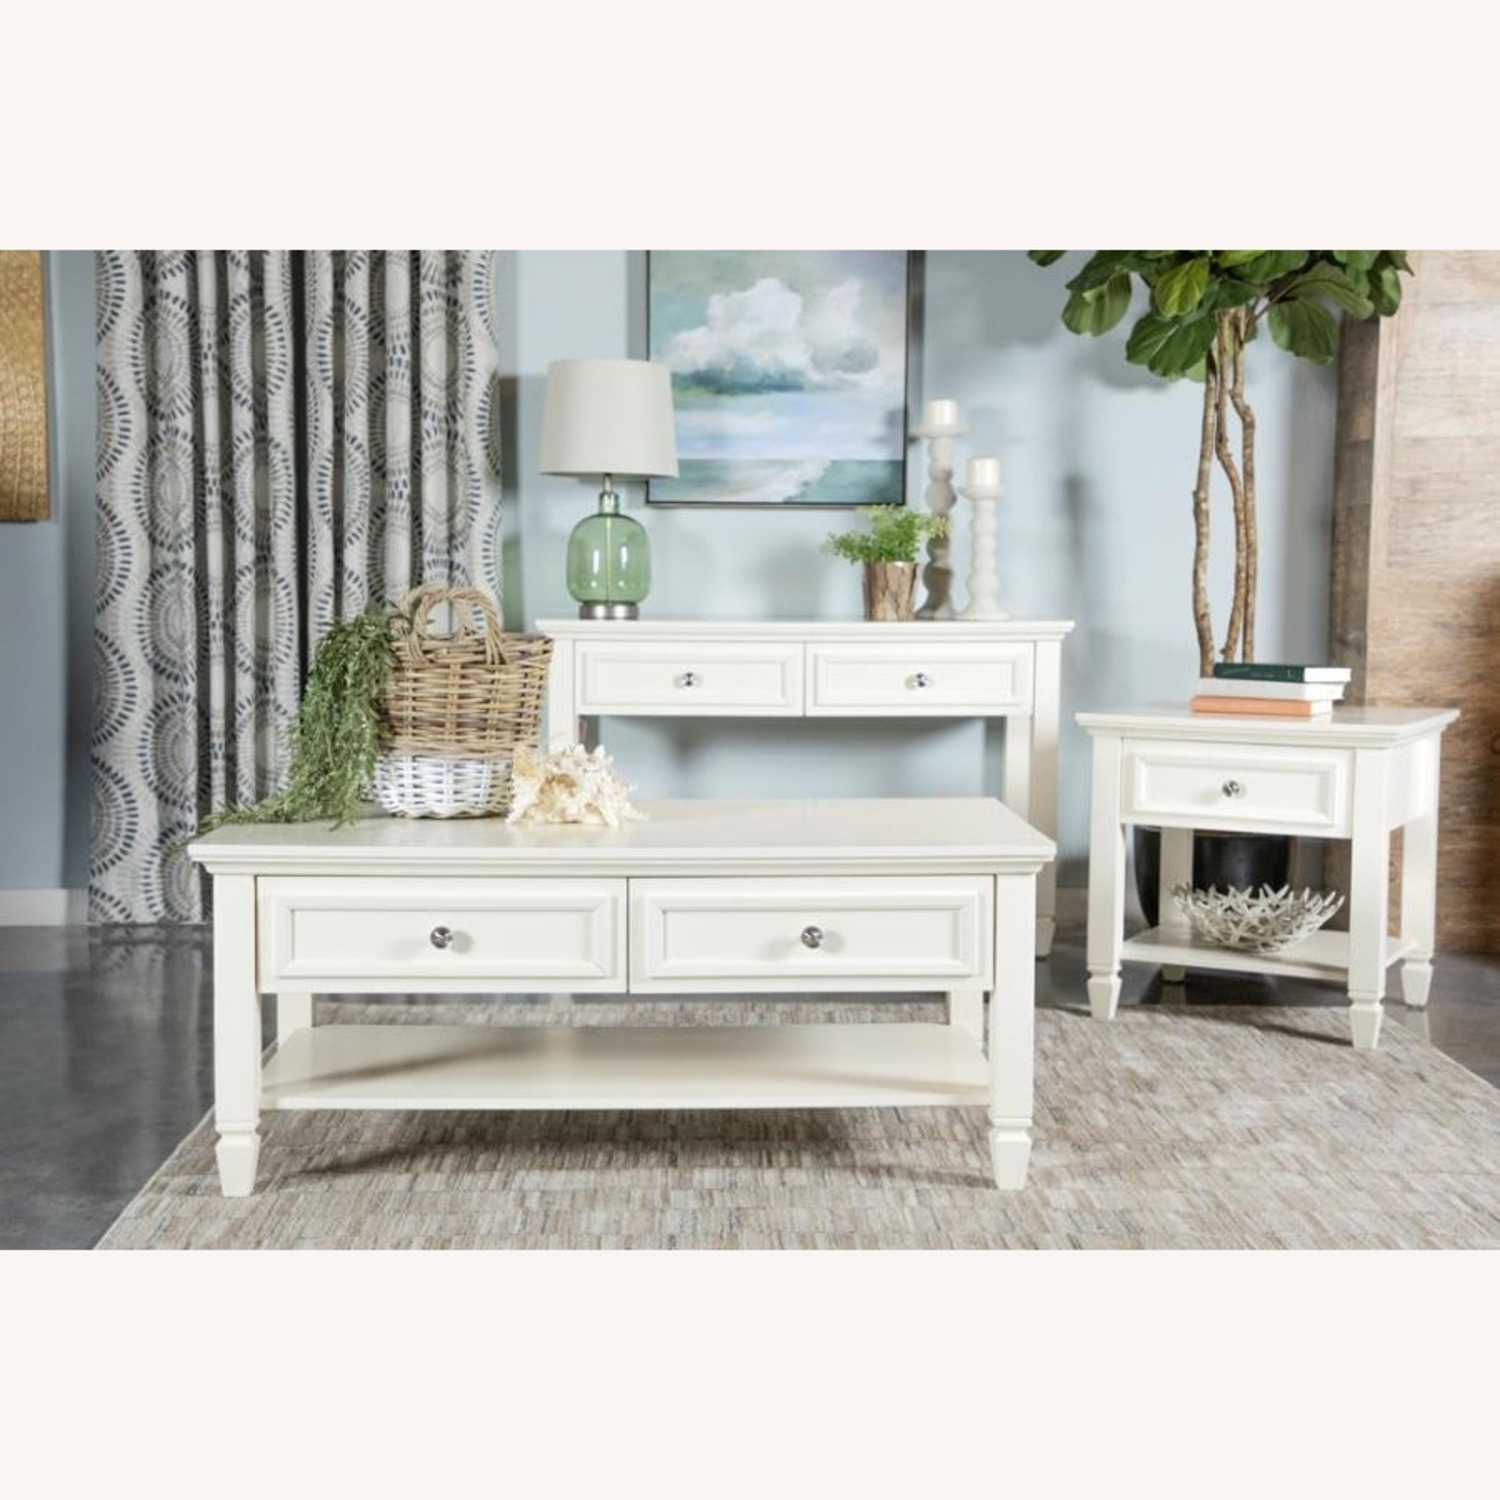 Sofa Table In White/Brushed Nickel - image-3